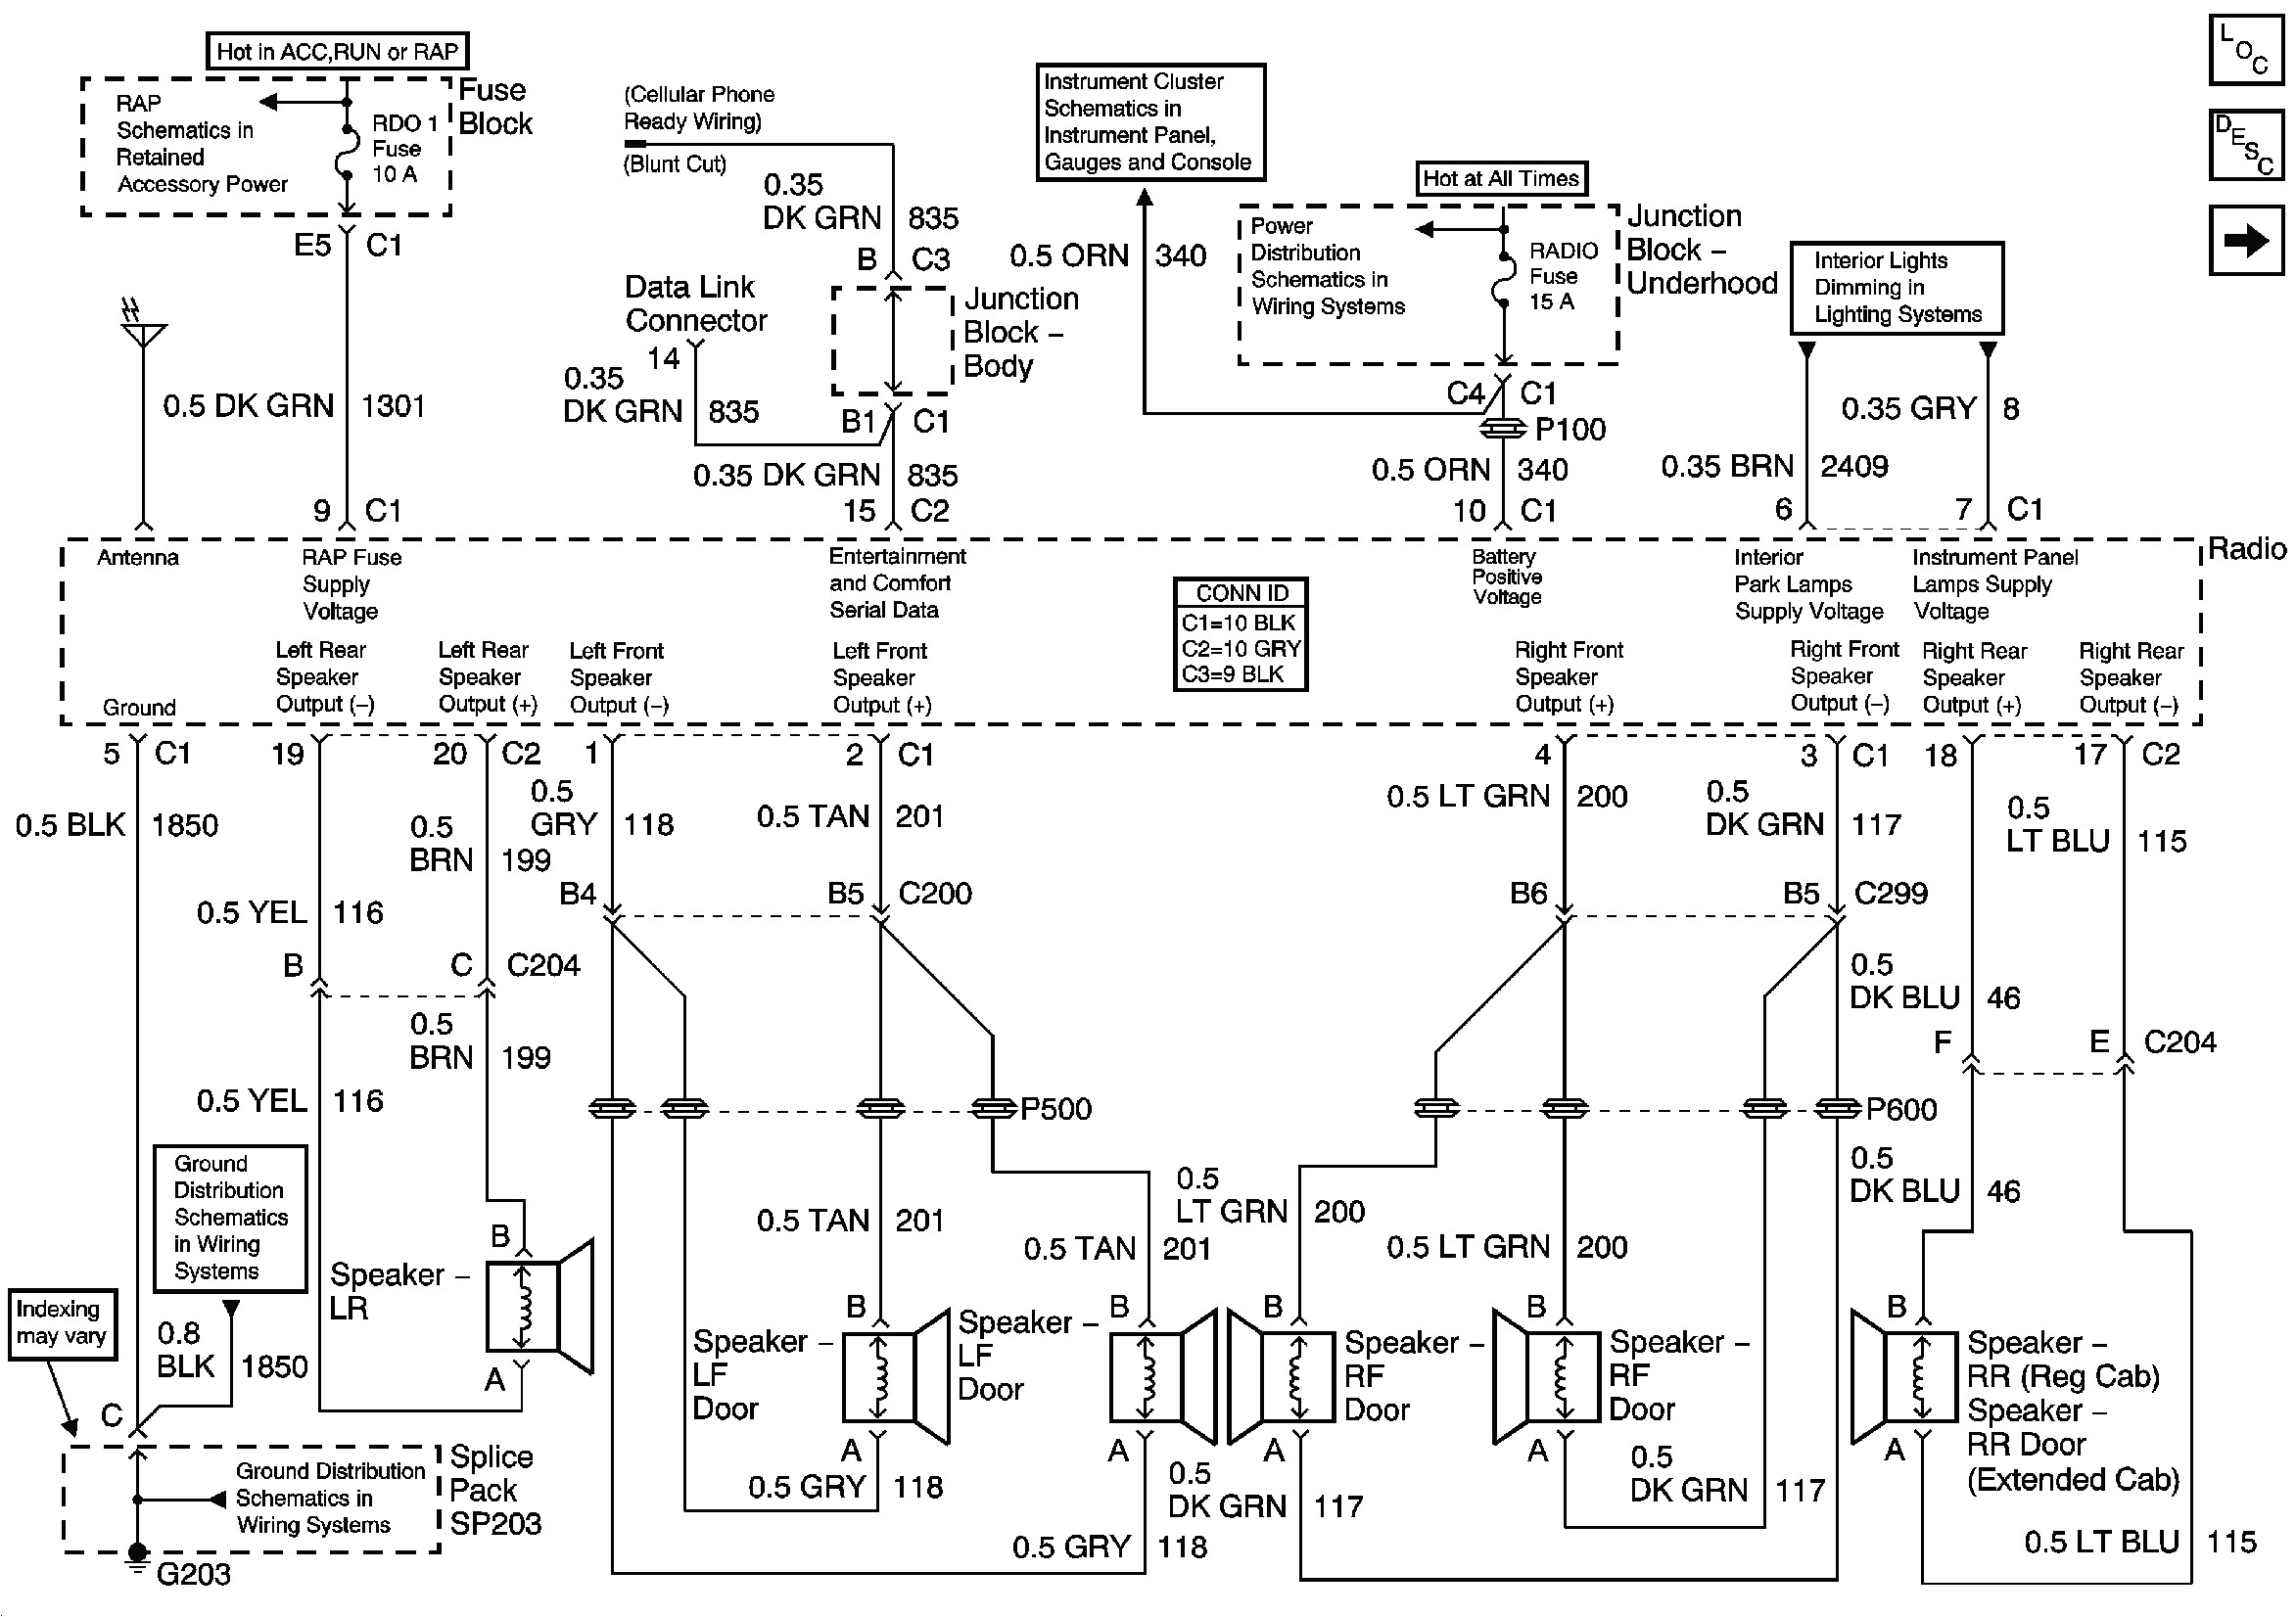 wiring diagram for 2014 chevy impala get free image about wiring wiring diagram for 2001 chevy impala get free image about wiring